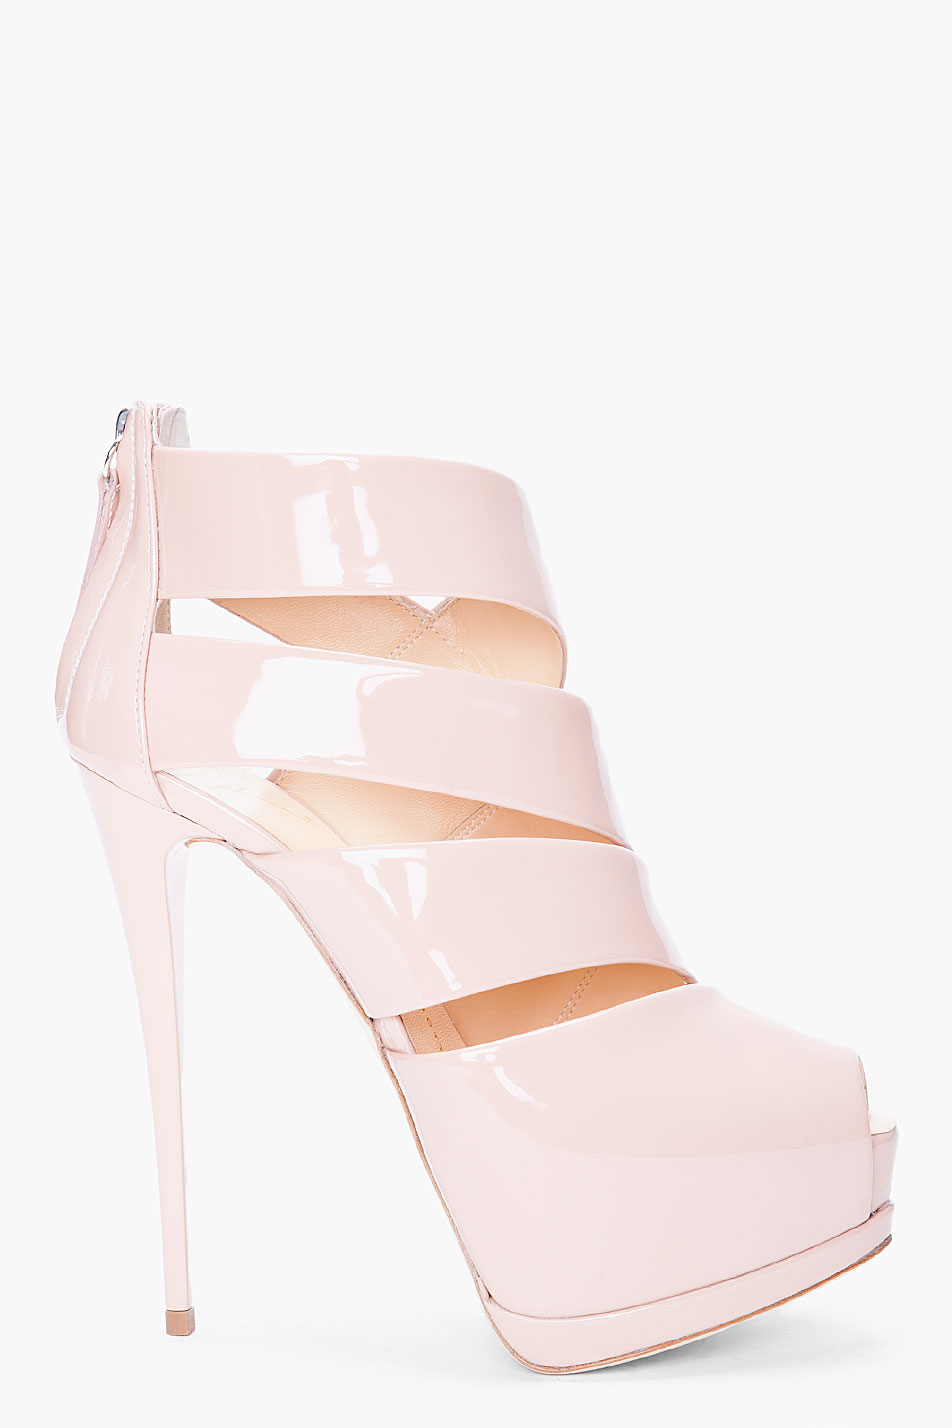 Lyst Giuseppe Zanotti Glossy Nude Patent Heels In Natural Gallery